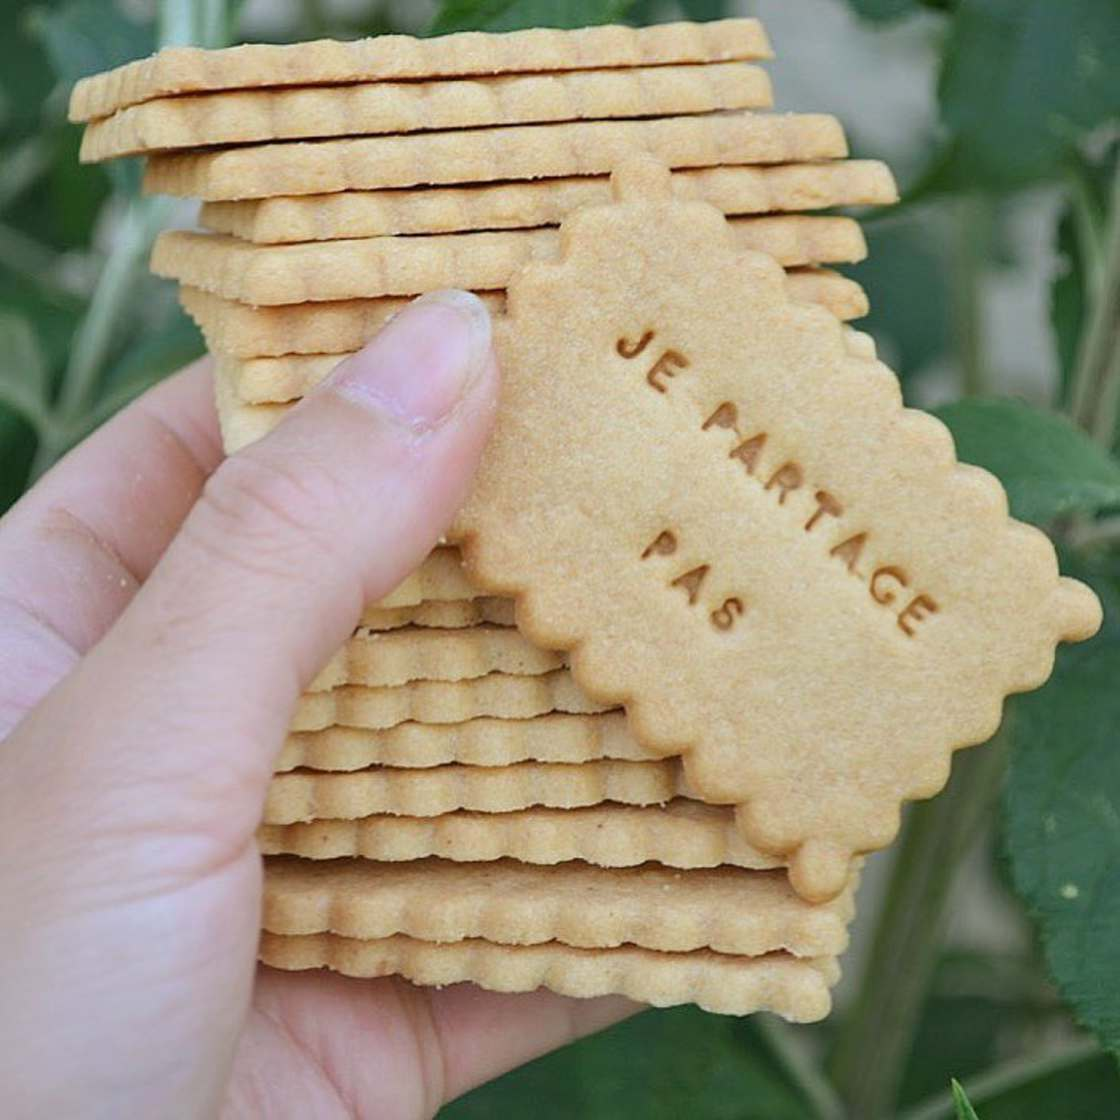 The expressive and very twisted biscuits of Shanty Biscuits